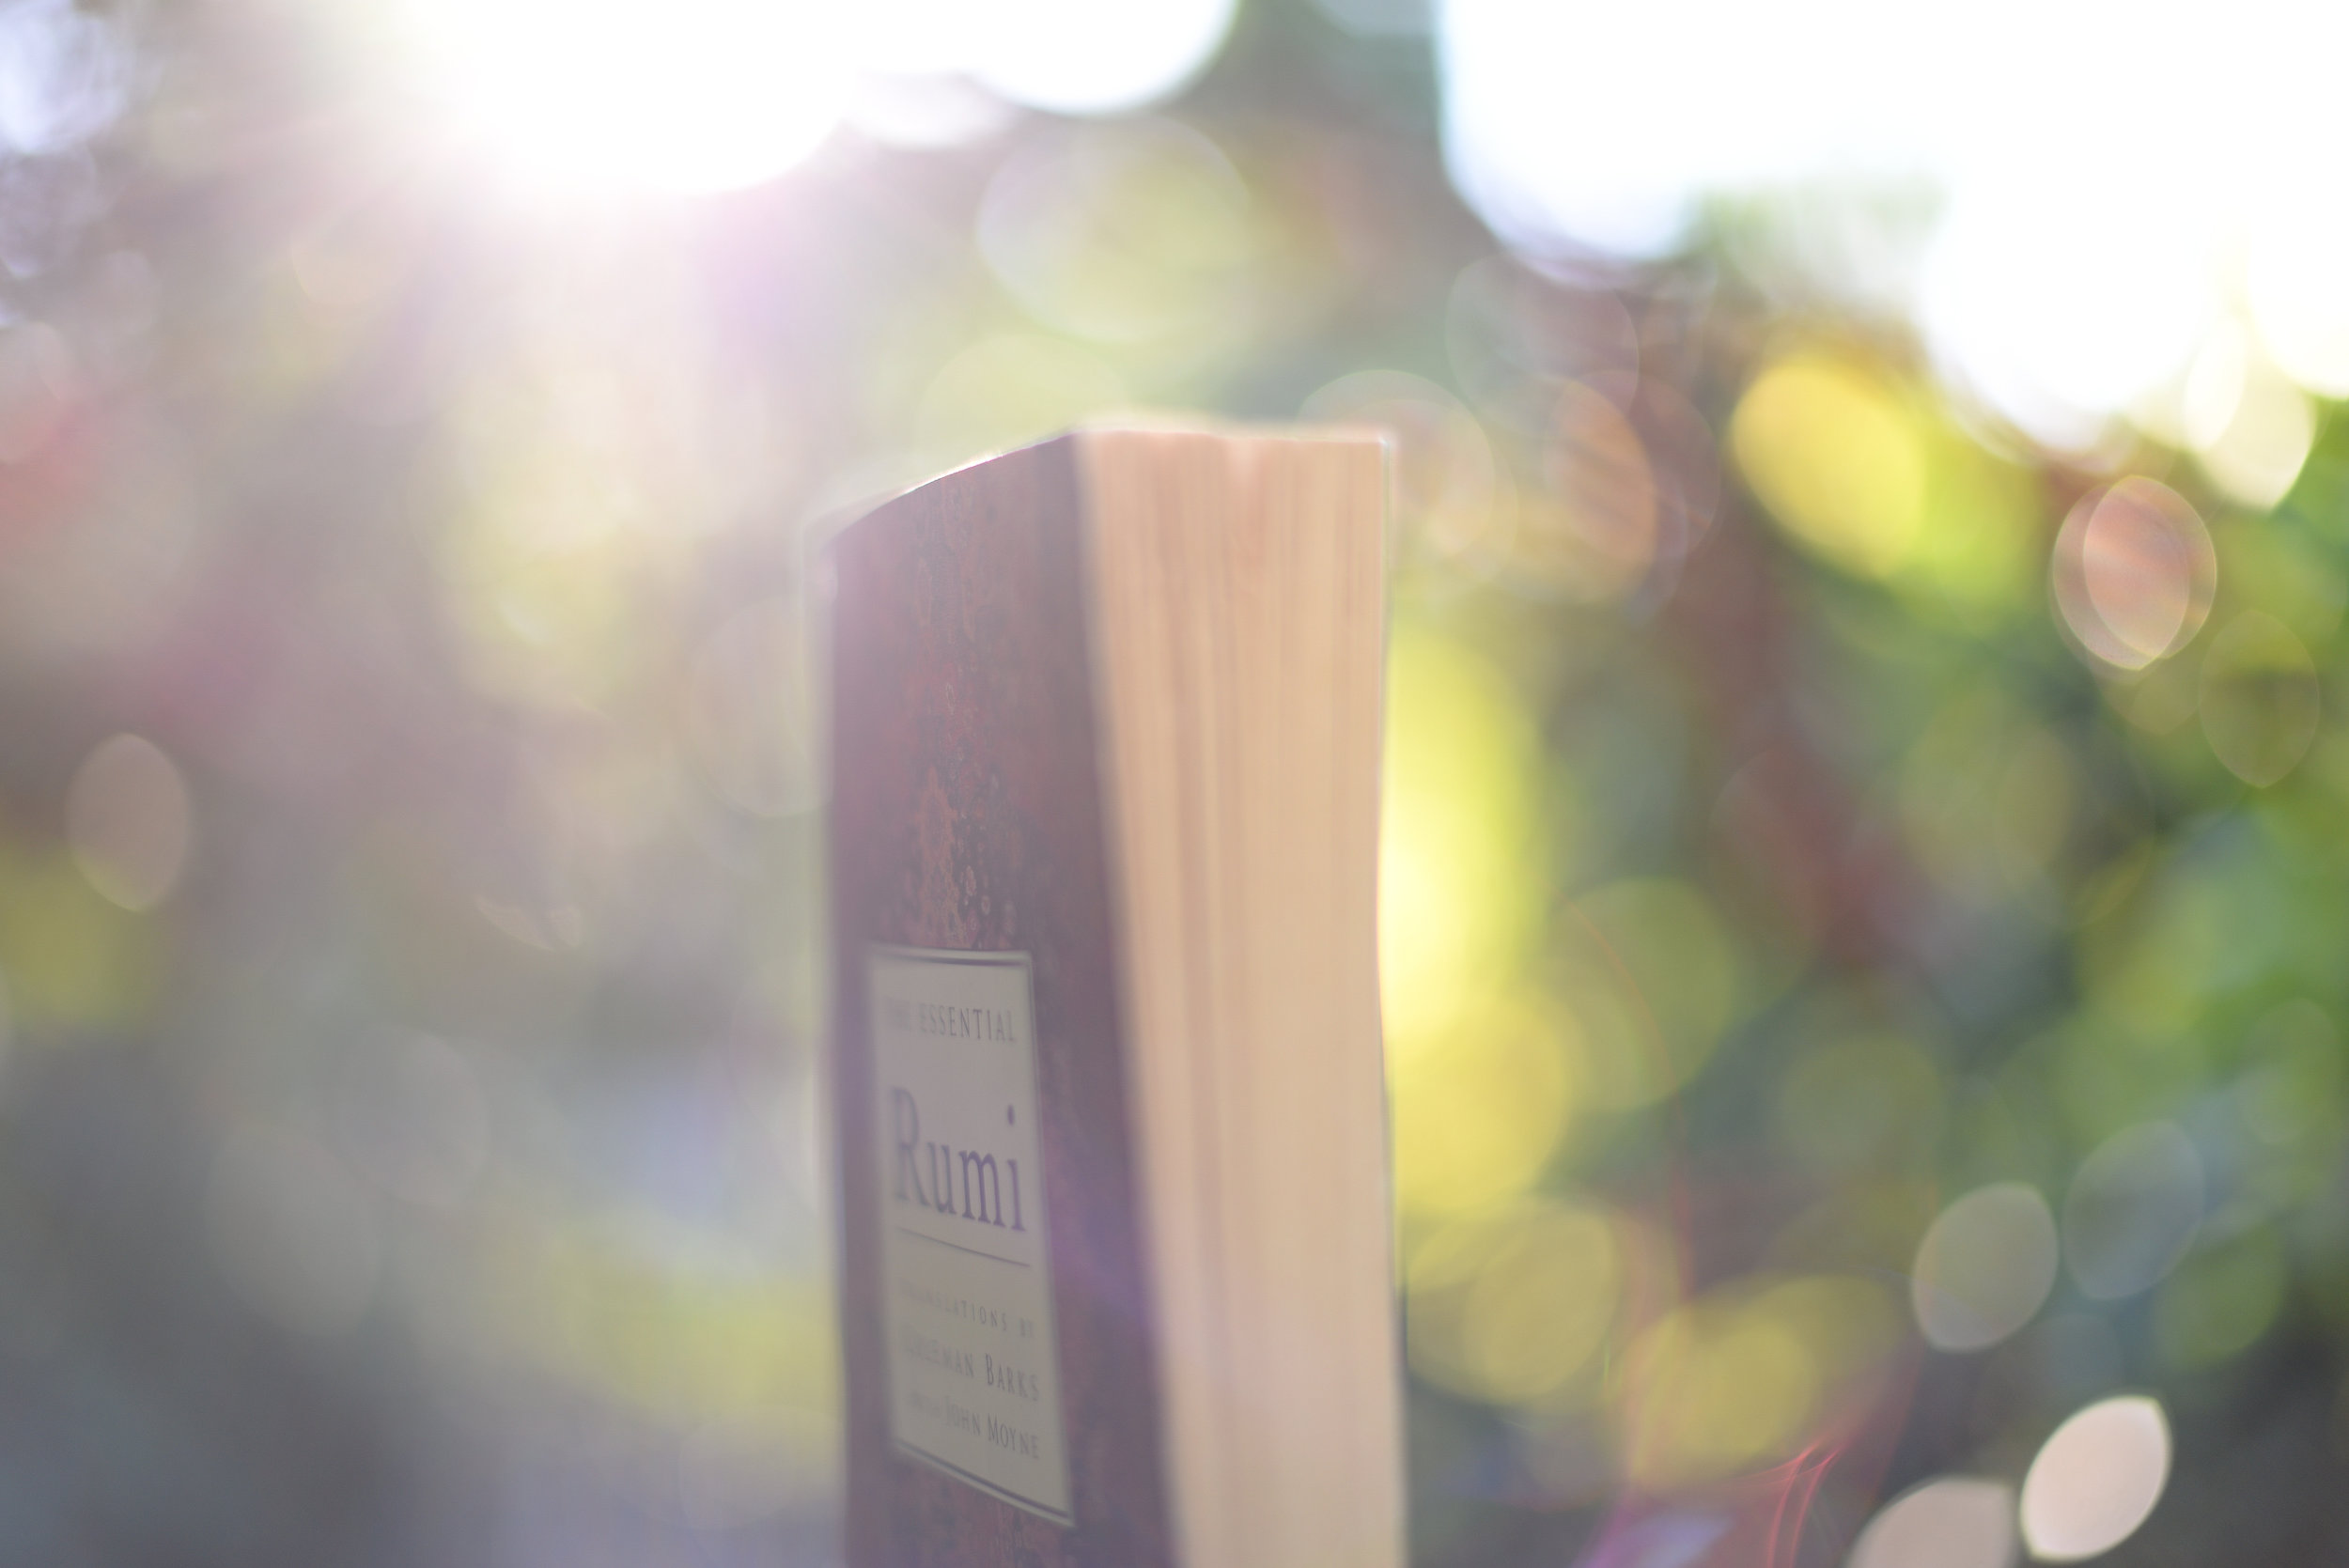 Rumi book and light